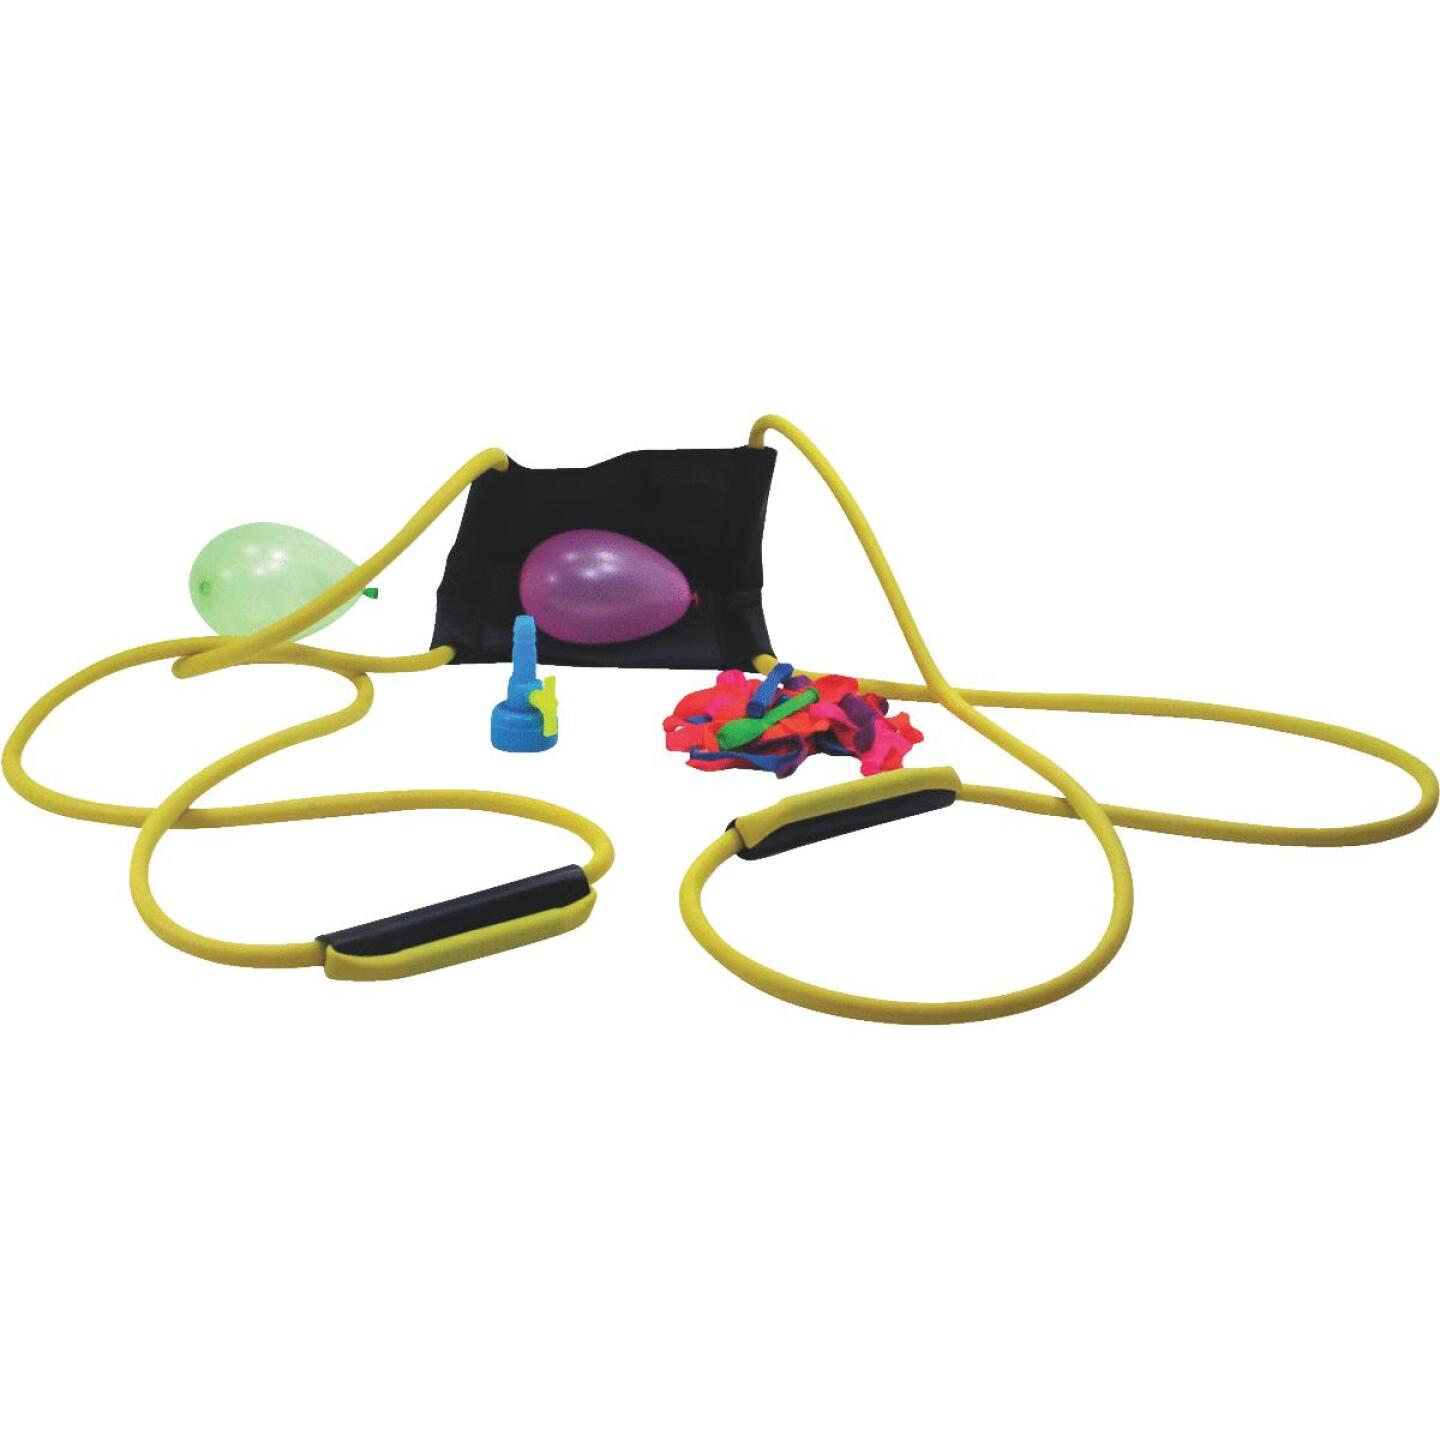 Water Sports 3-Person Water Balloon Launcher Image 1